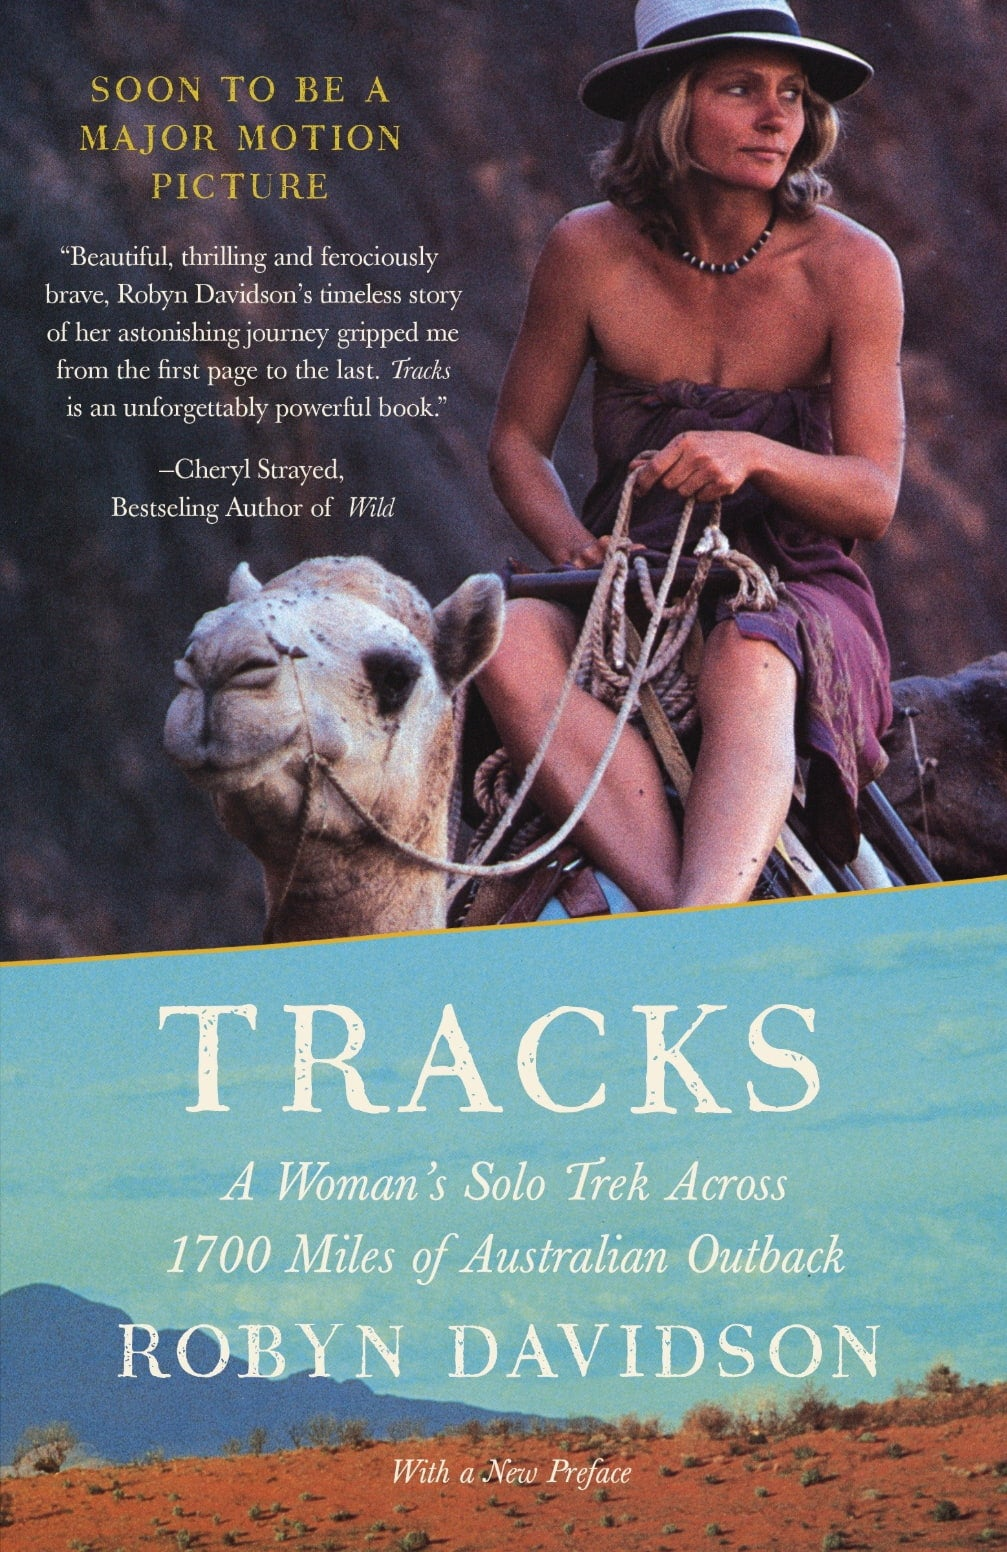 a woman rides a camel on the cover of a book